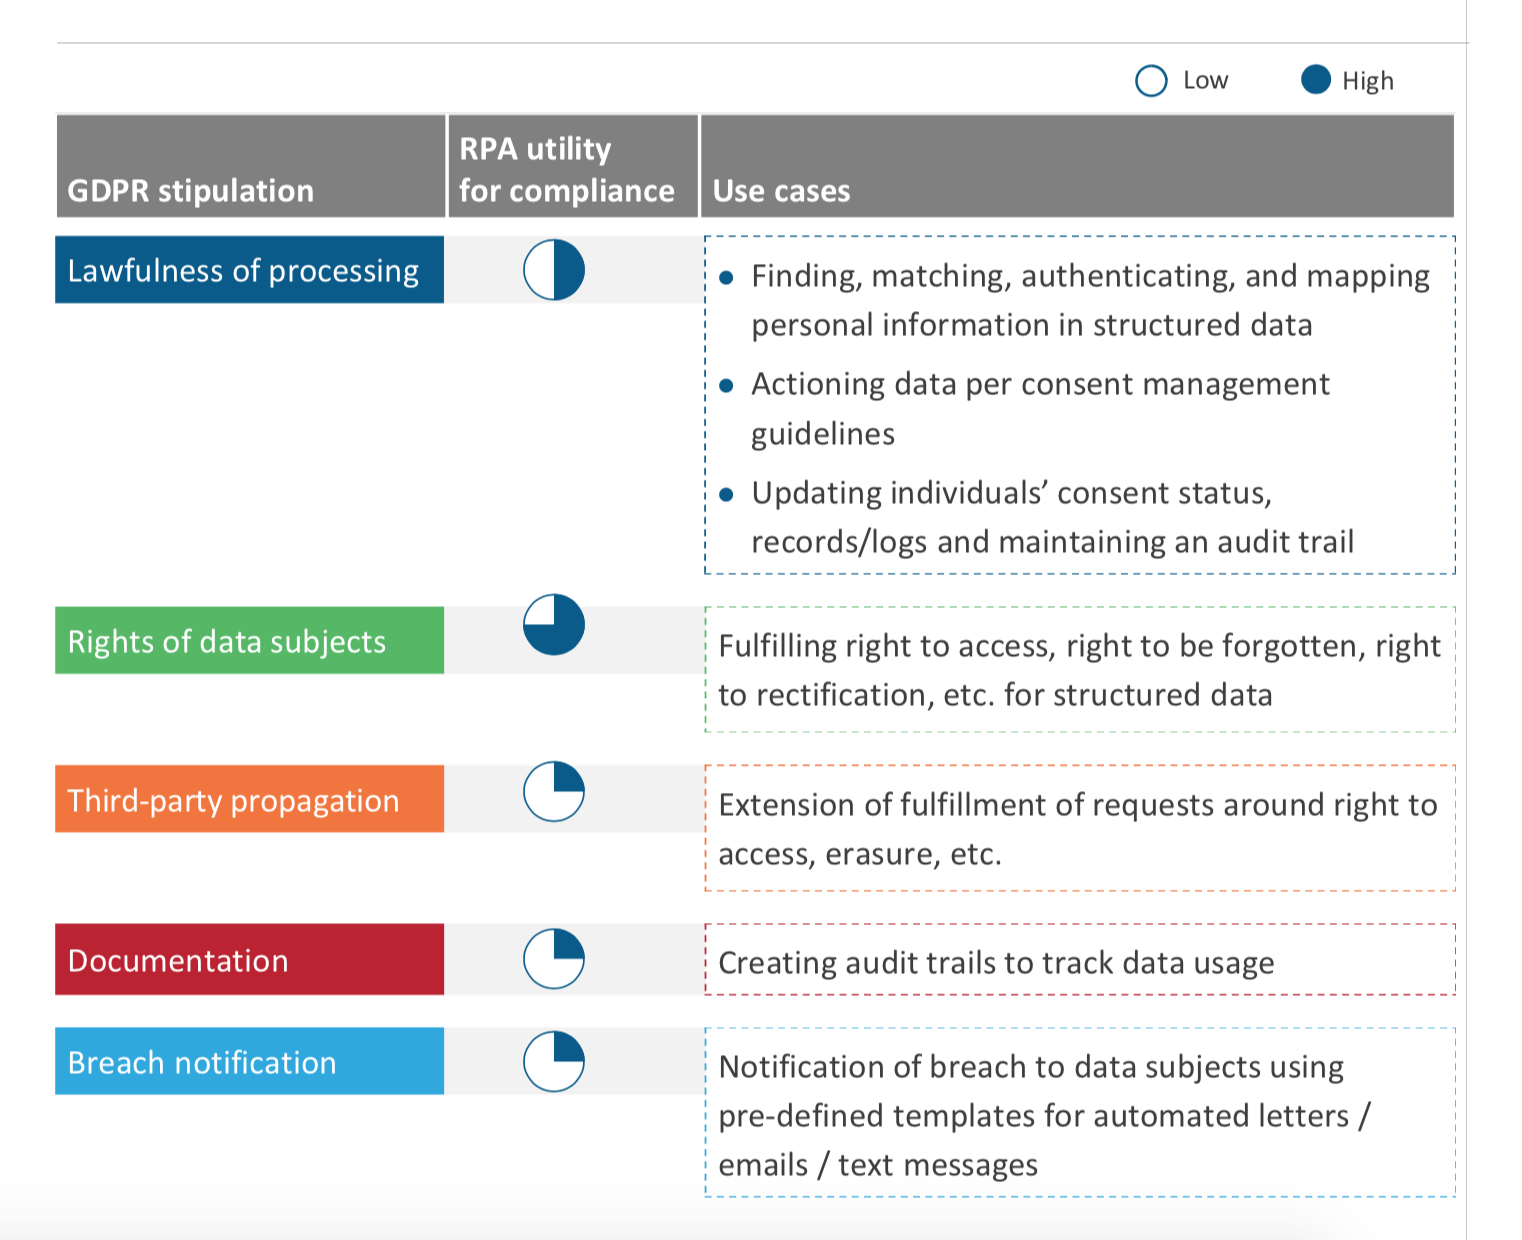 RPA utility and use cases for GDPR stipulations, Everest Group (2018)